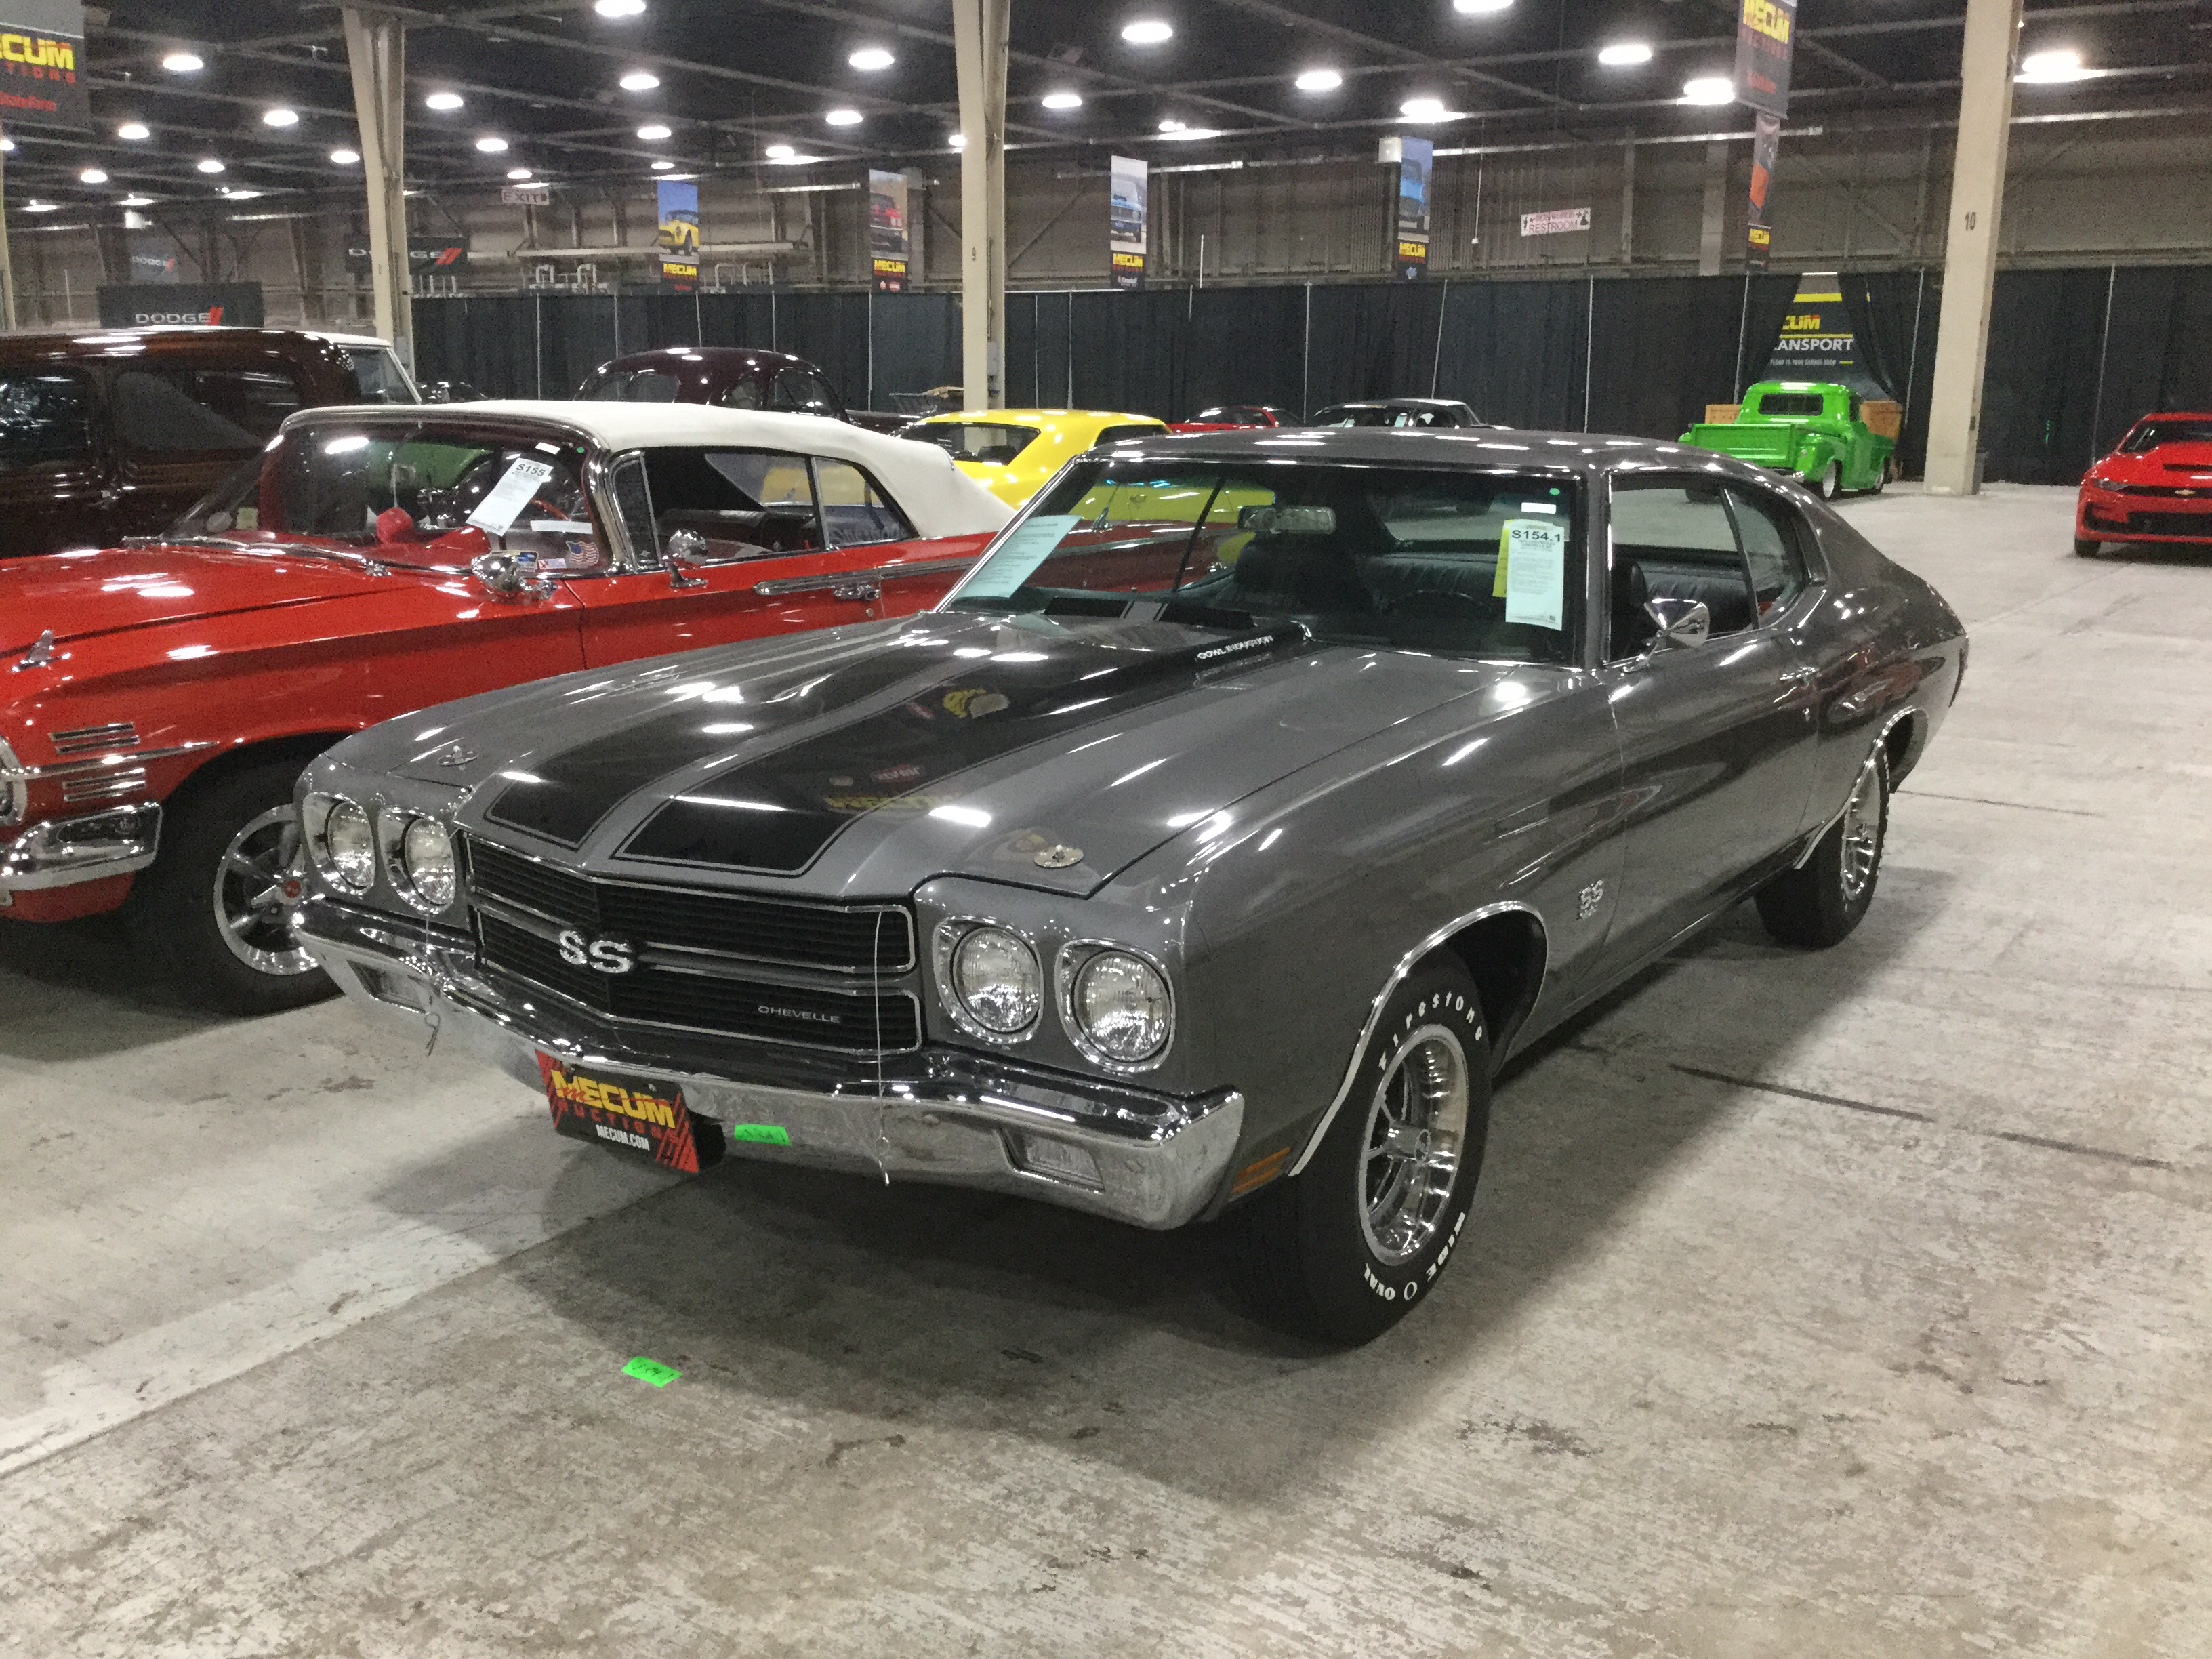 1970 Chevrolet Chevelle Values | Hagerty Valuation Tool®